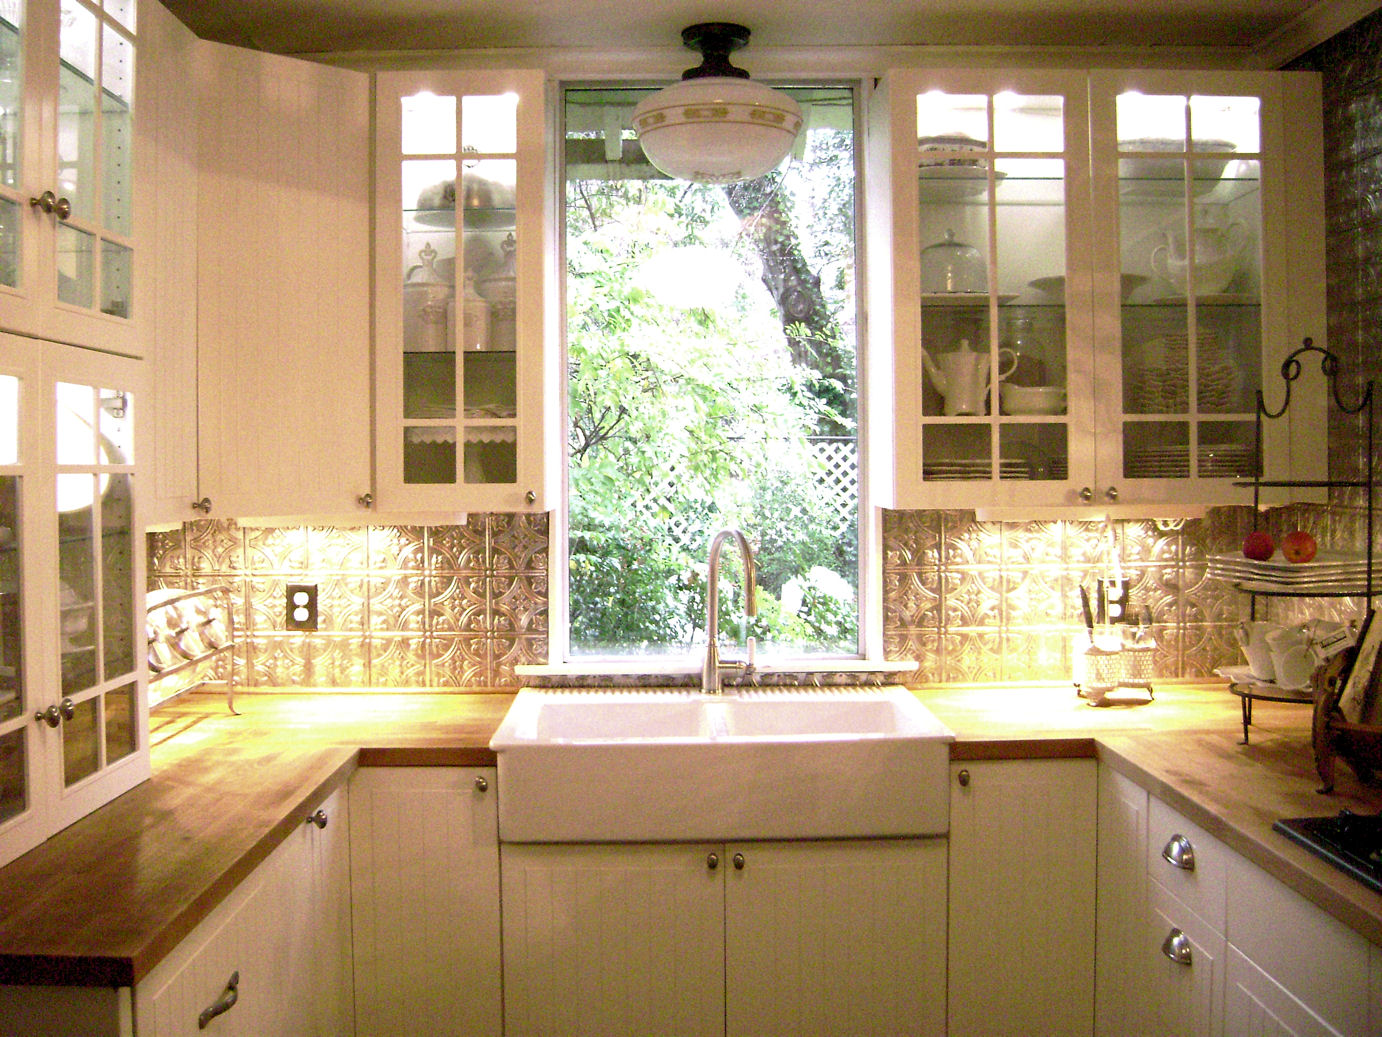 Small Kitchen Remodeling Ideas with Windows